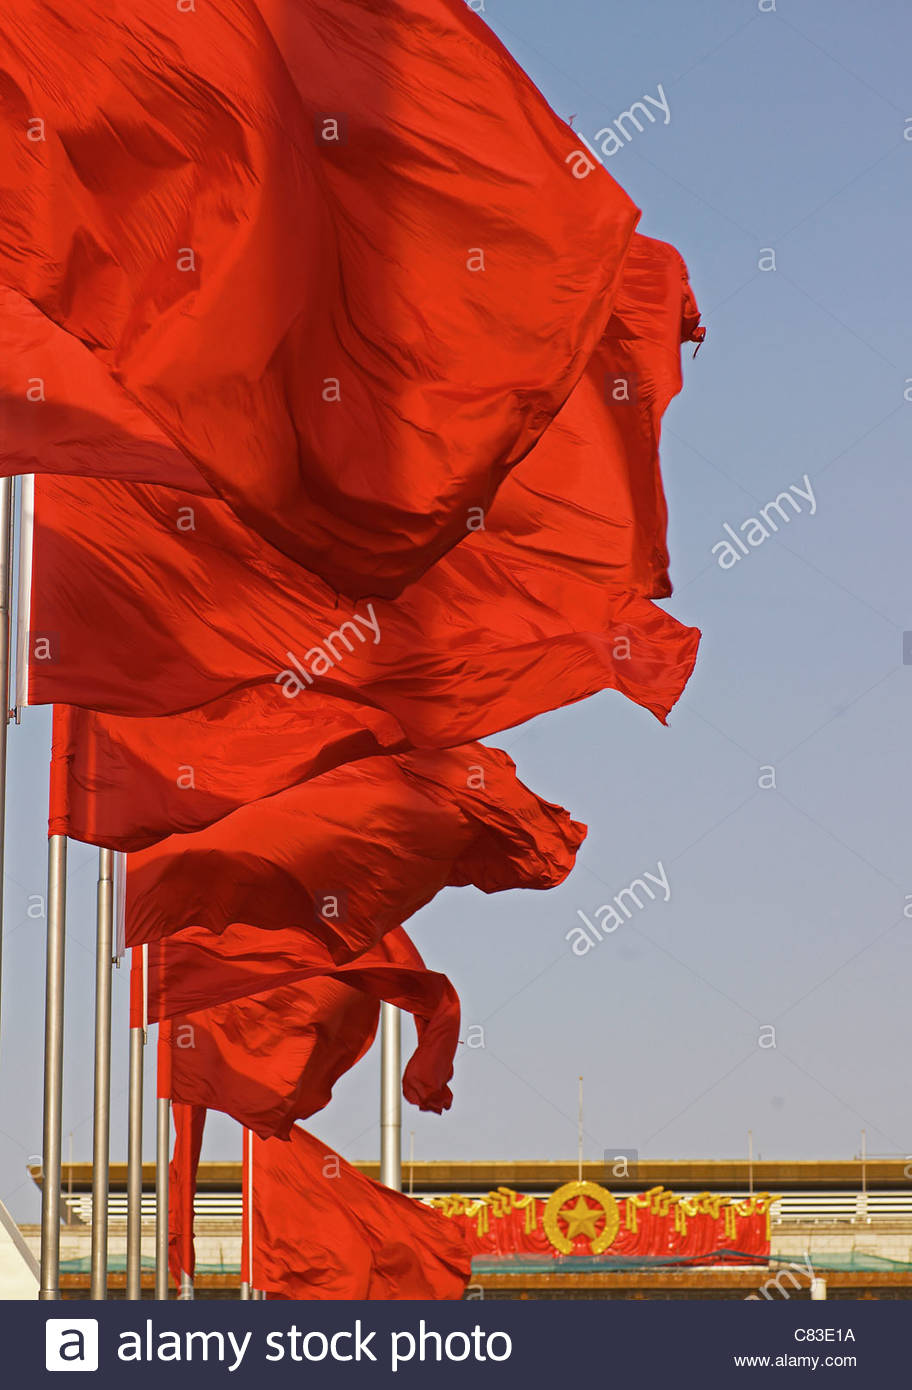 Red flags waving in wind - Stock Image